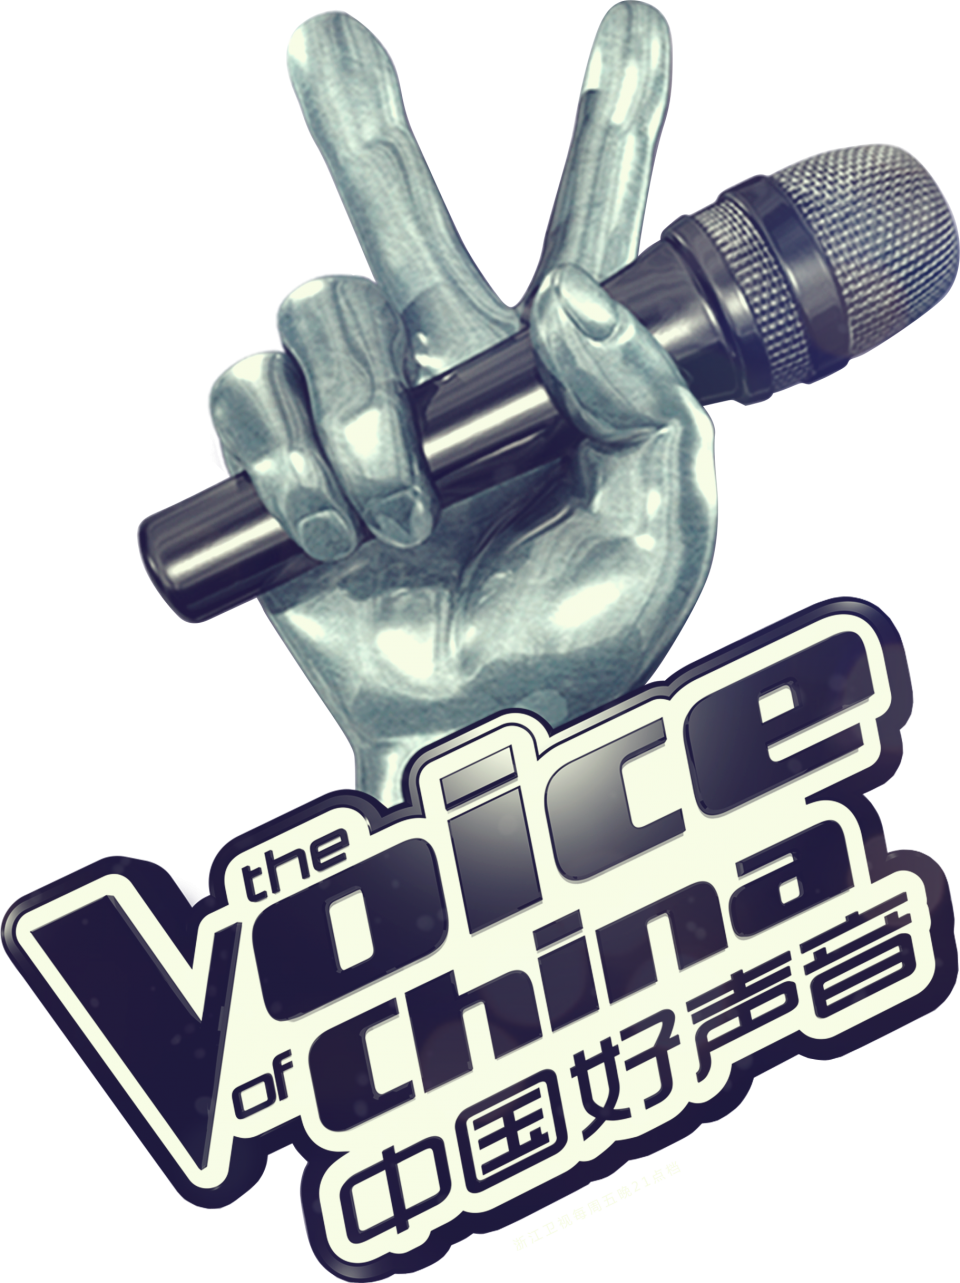 Voice of China PNG Image